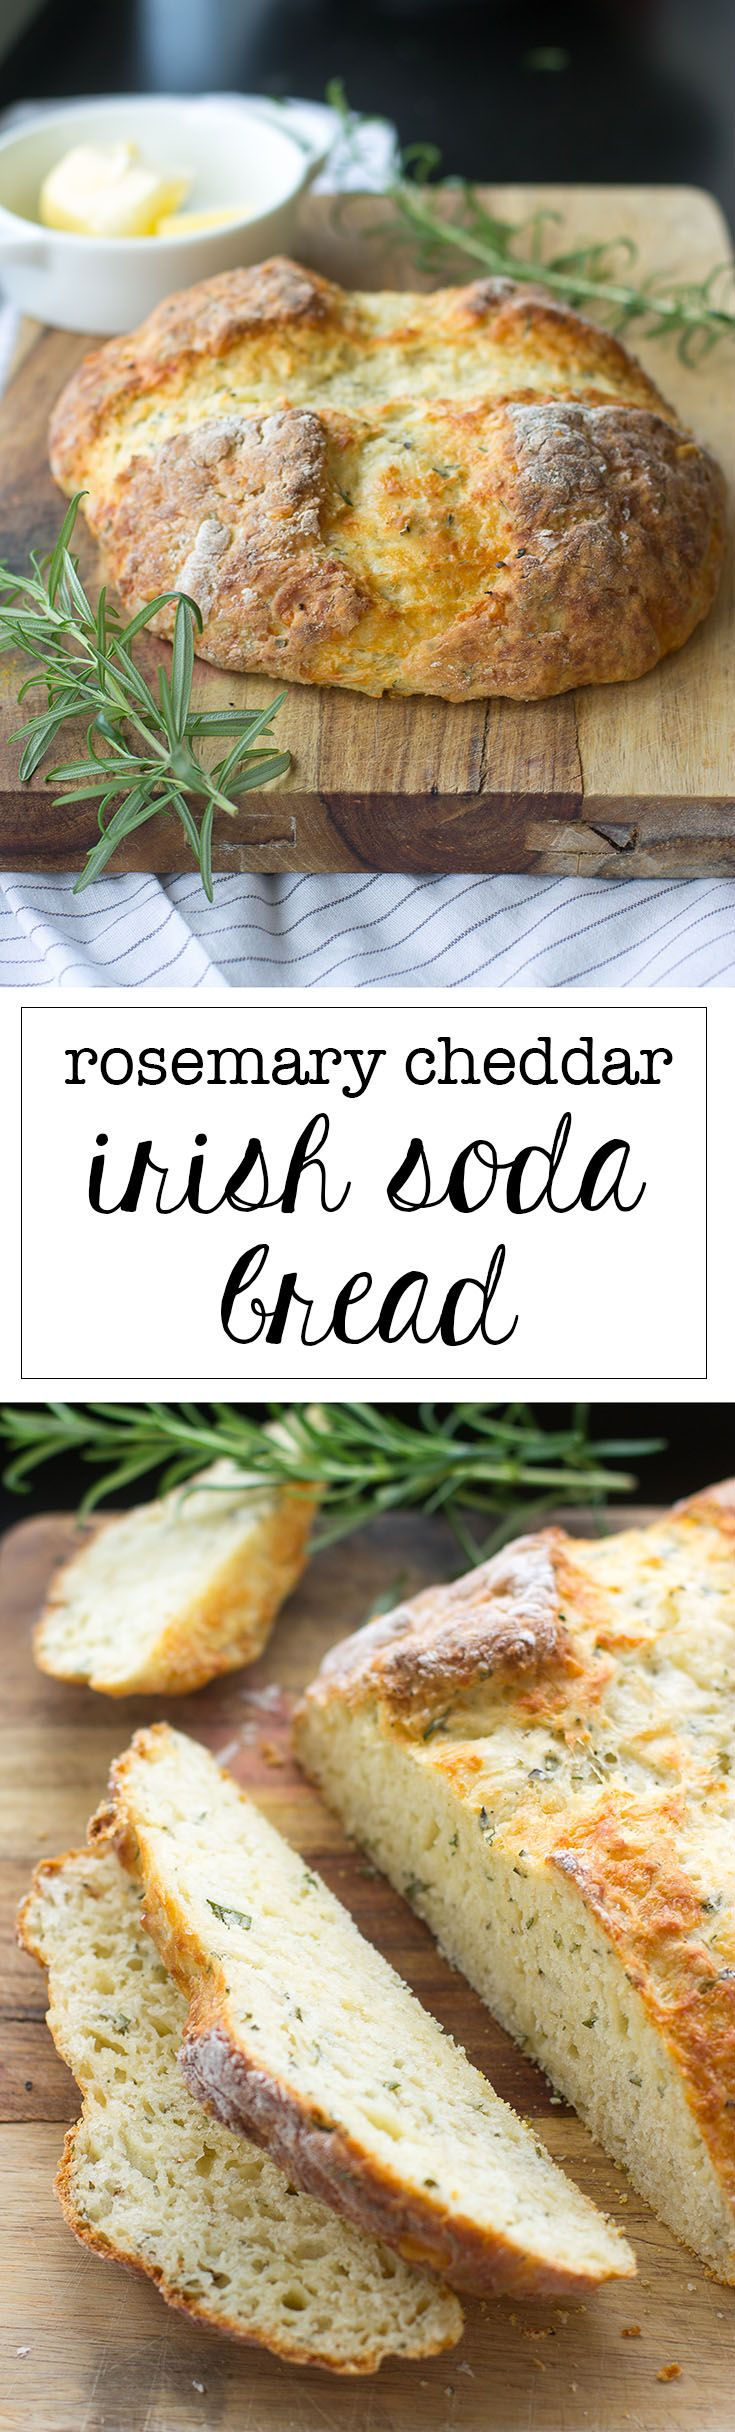 Rosemary and cheddar baked into the loaf makes for a dynamite savory spin on Irish soda bread. #sodabread